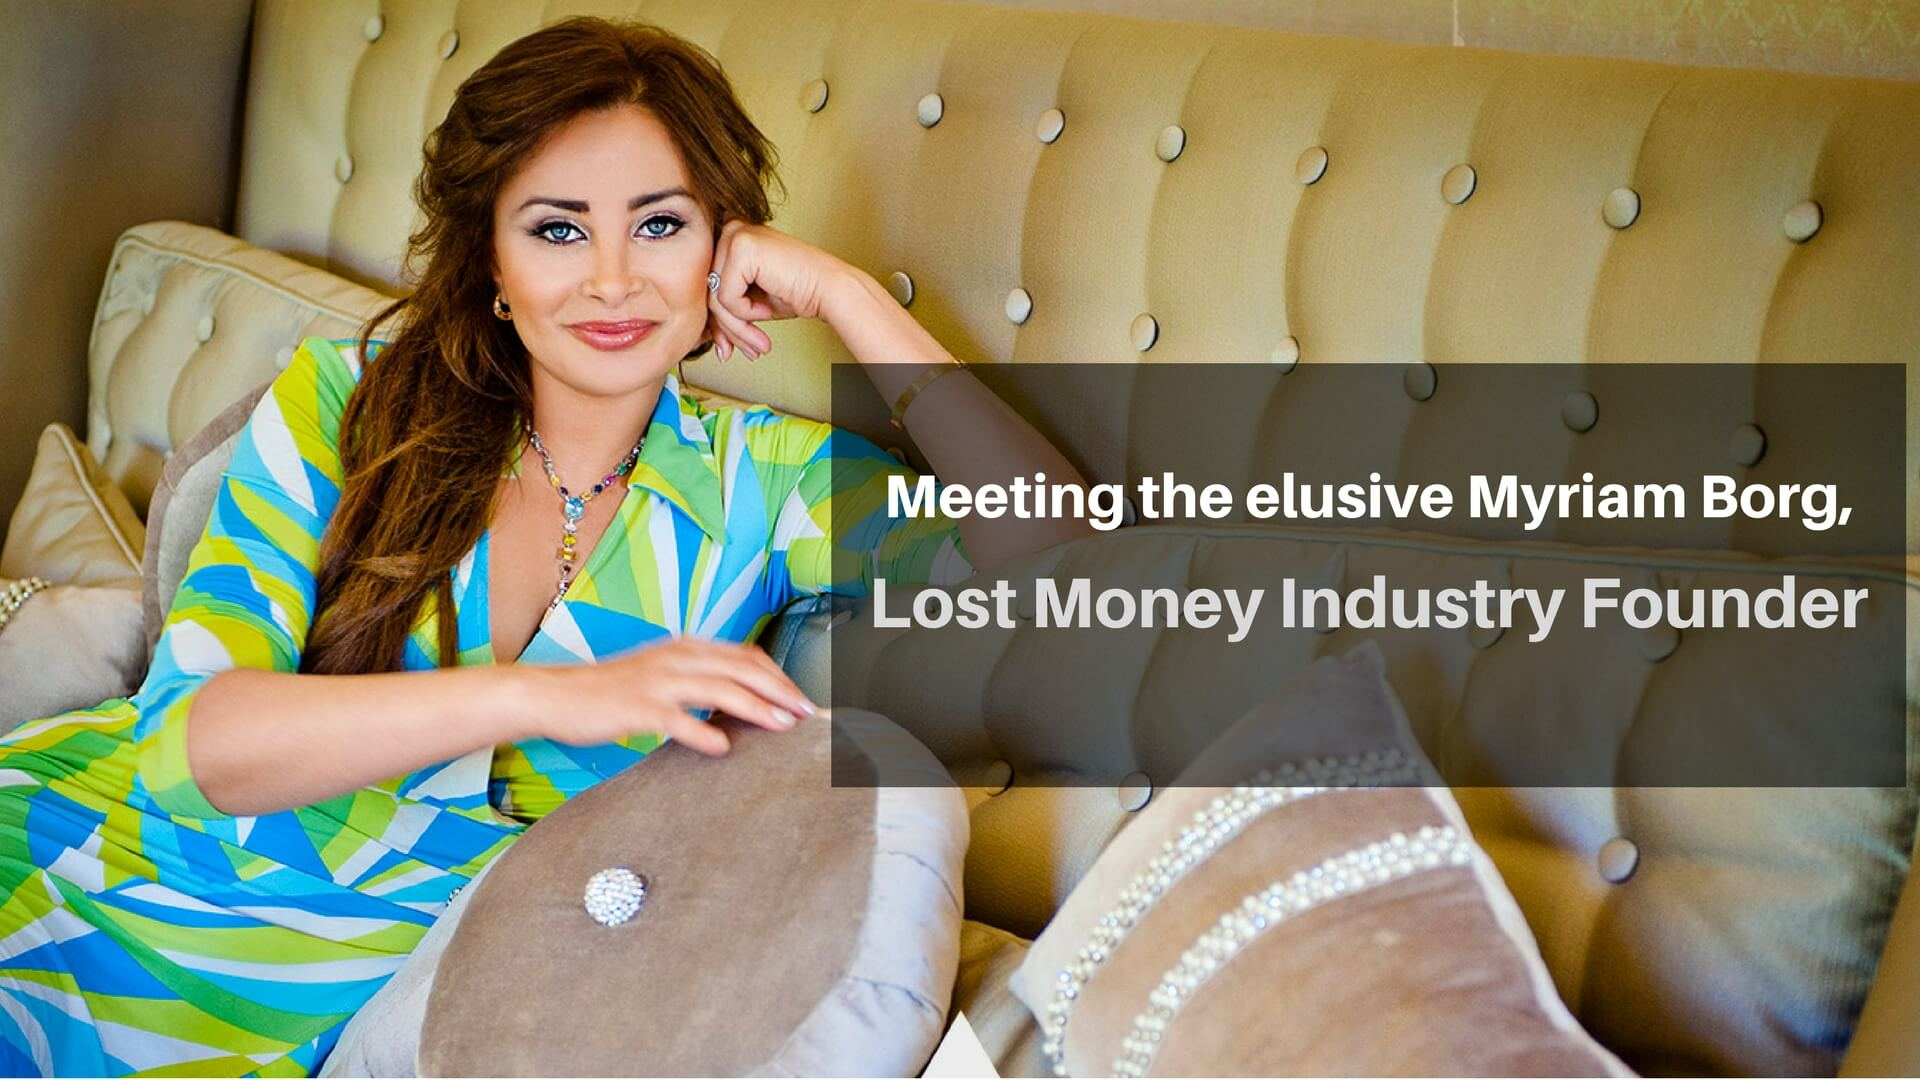 Meeting the elusive Myriam Borg, Lost Money Industry Founder